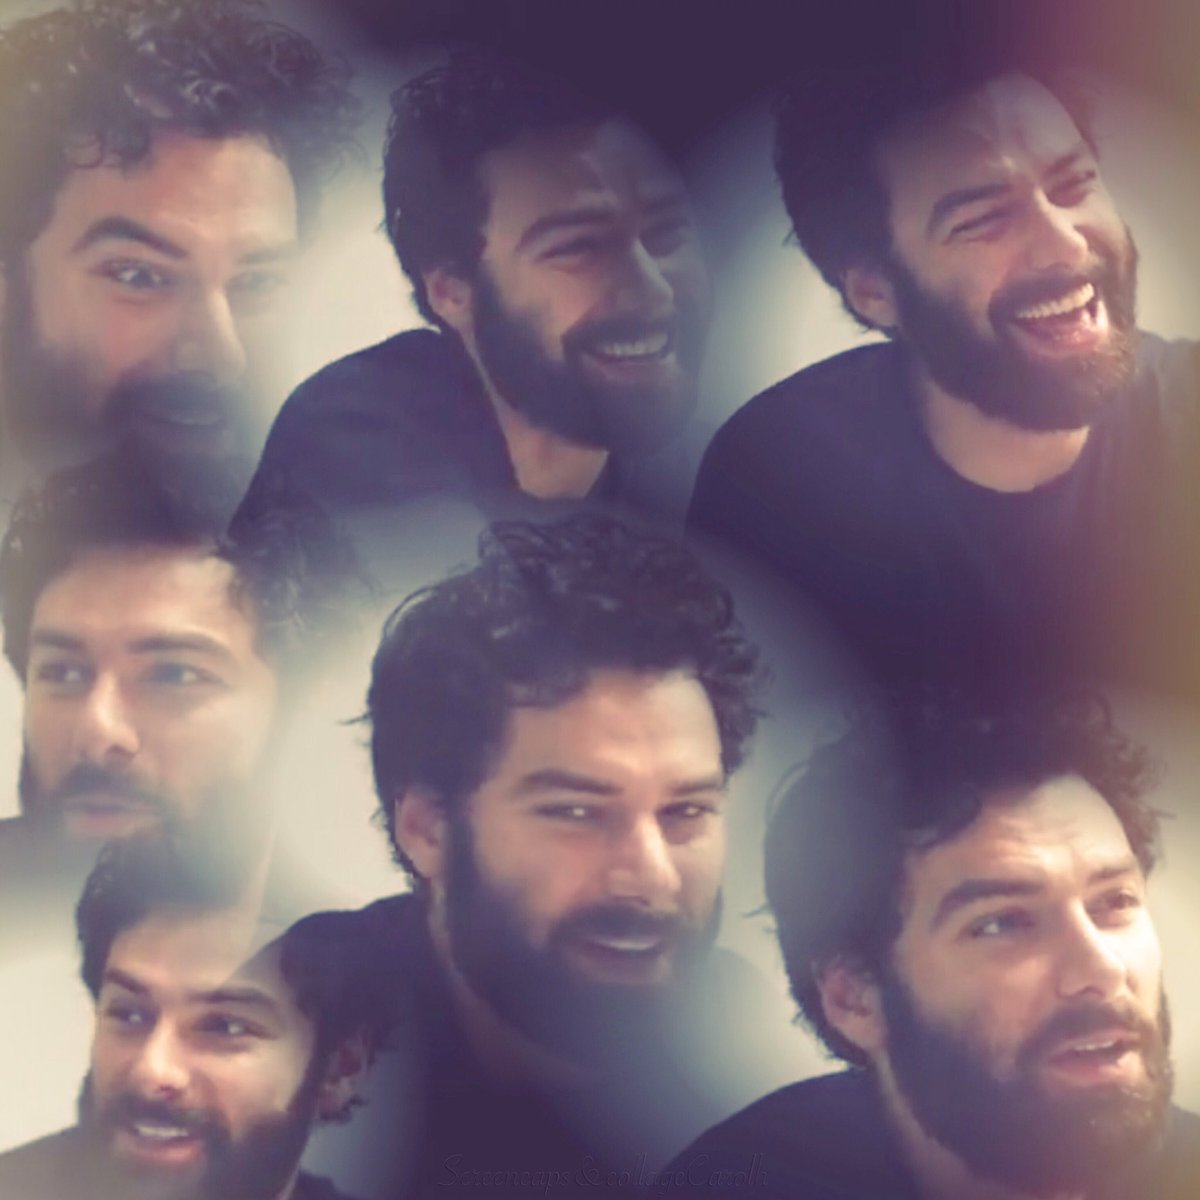 #FurryFriday...better late than never...#AidanCrew..<br>http://pic.twitter.com/aorsw6LW1M